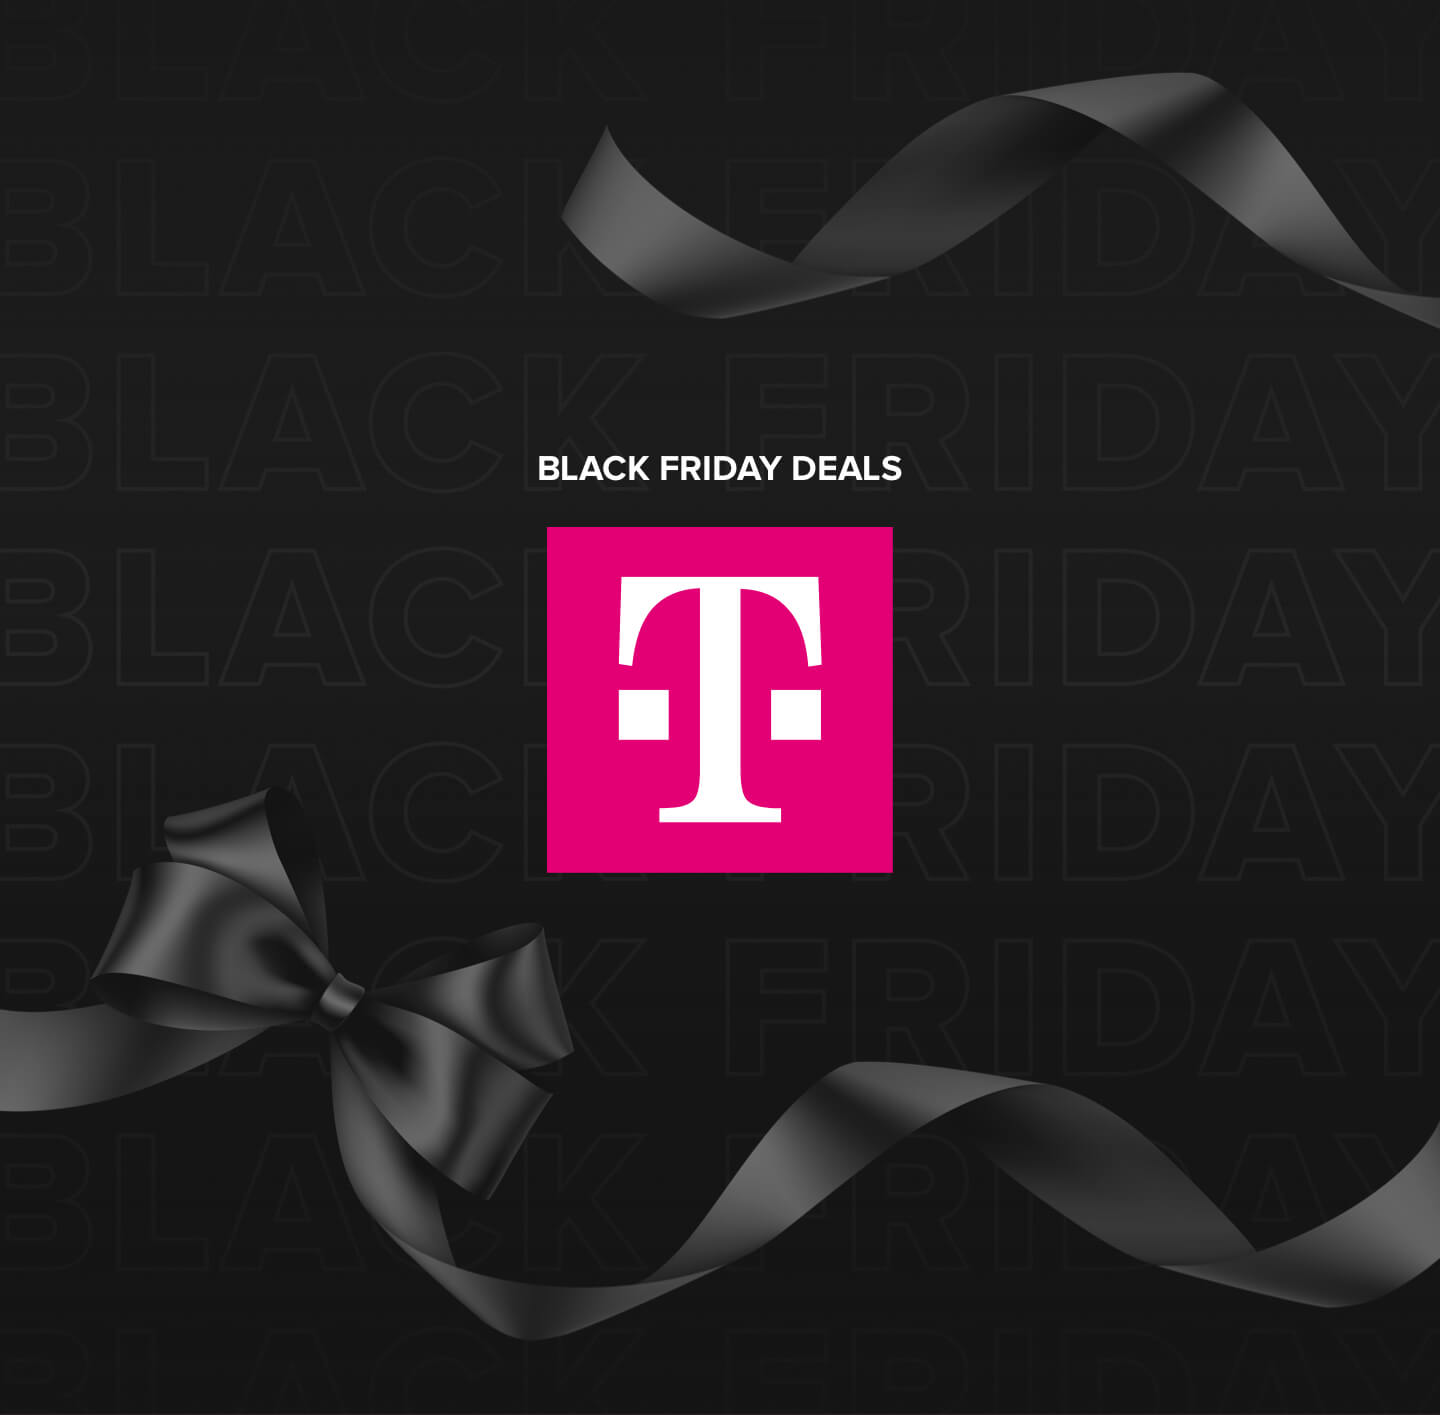 Image promoting T-Mobile's Black Friday deals